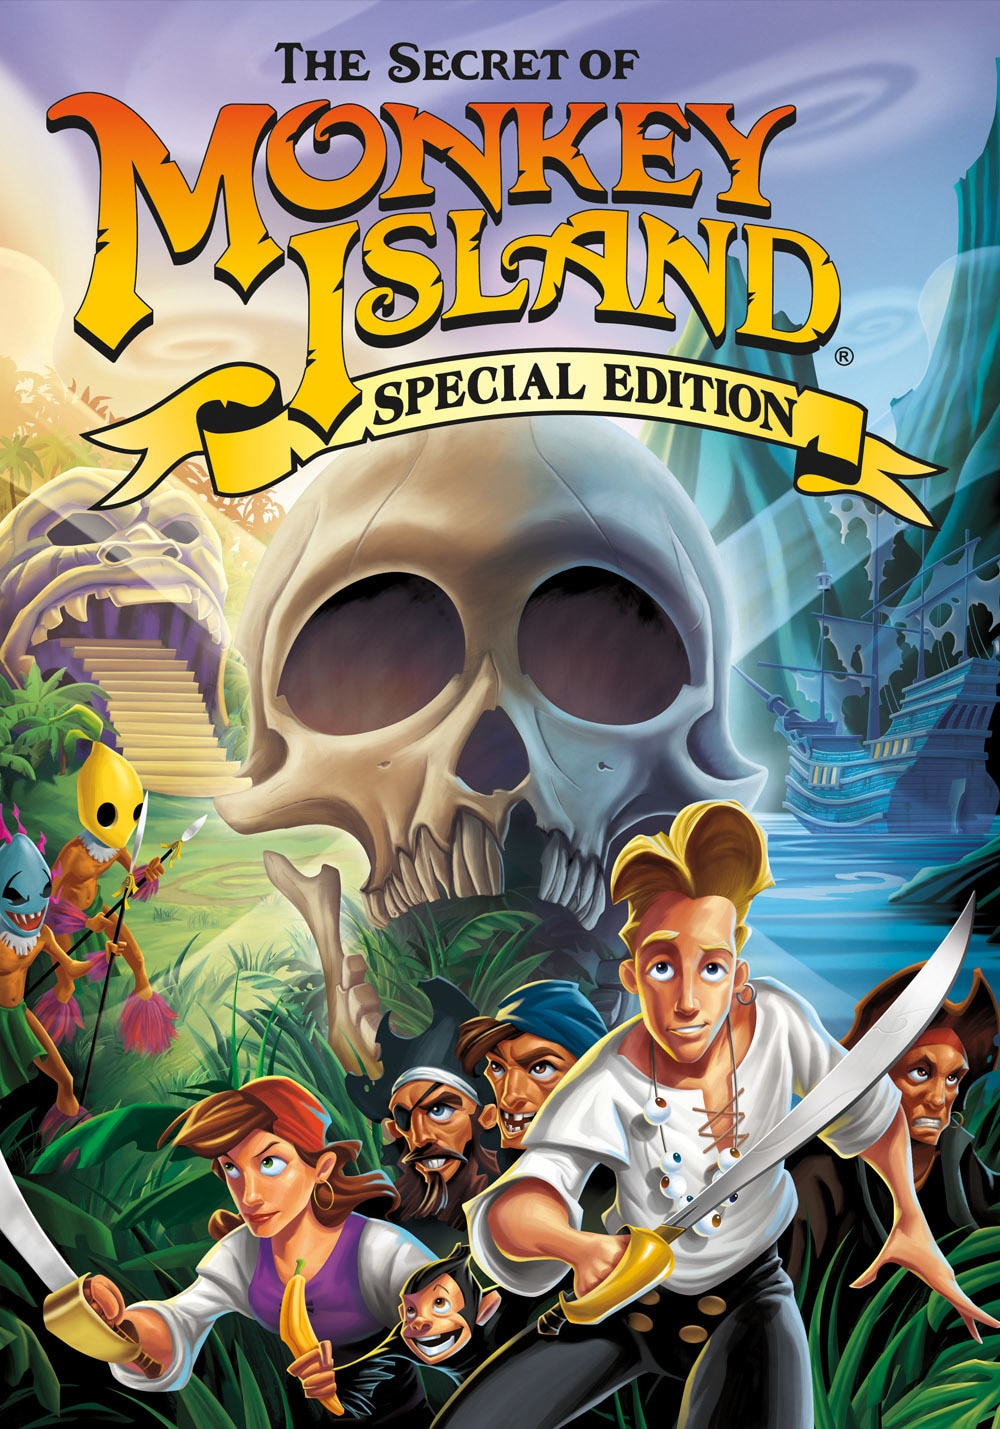 the secret of monkey island download free